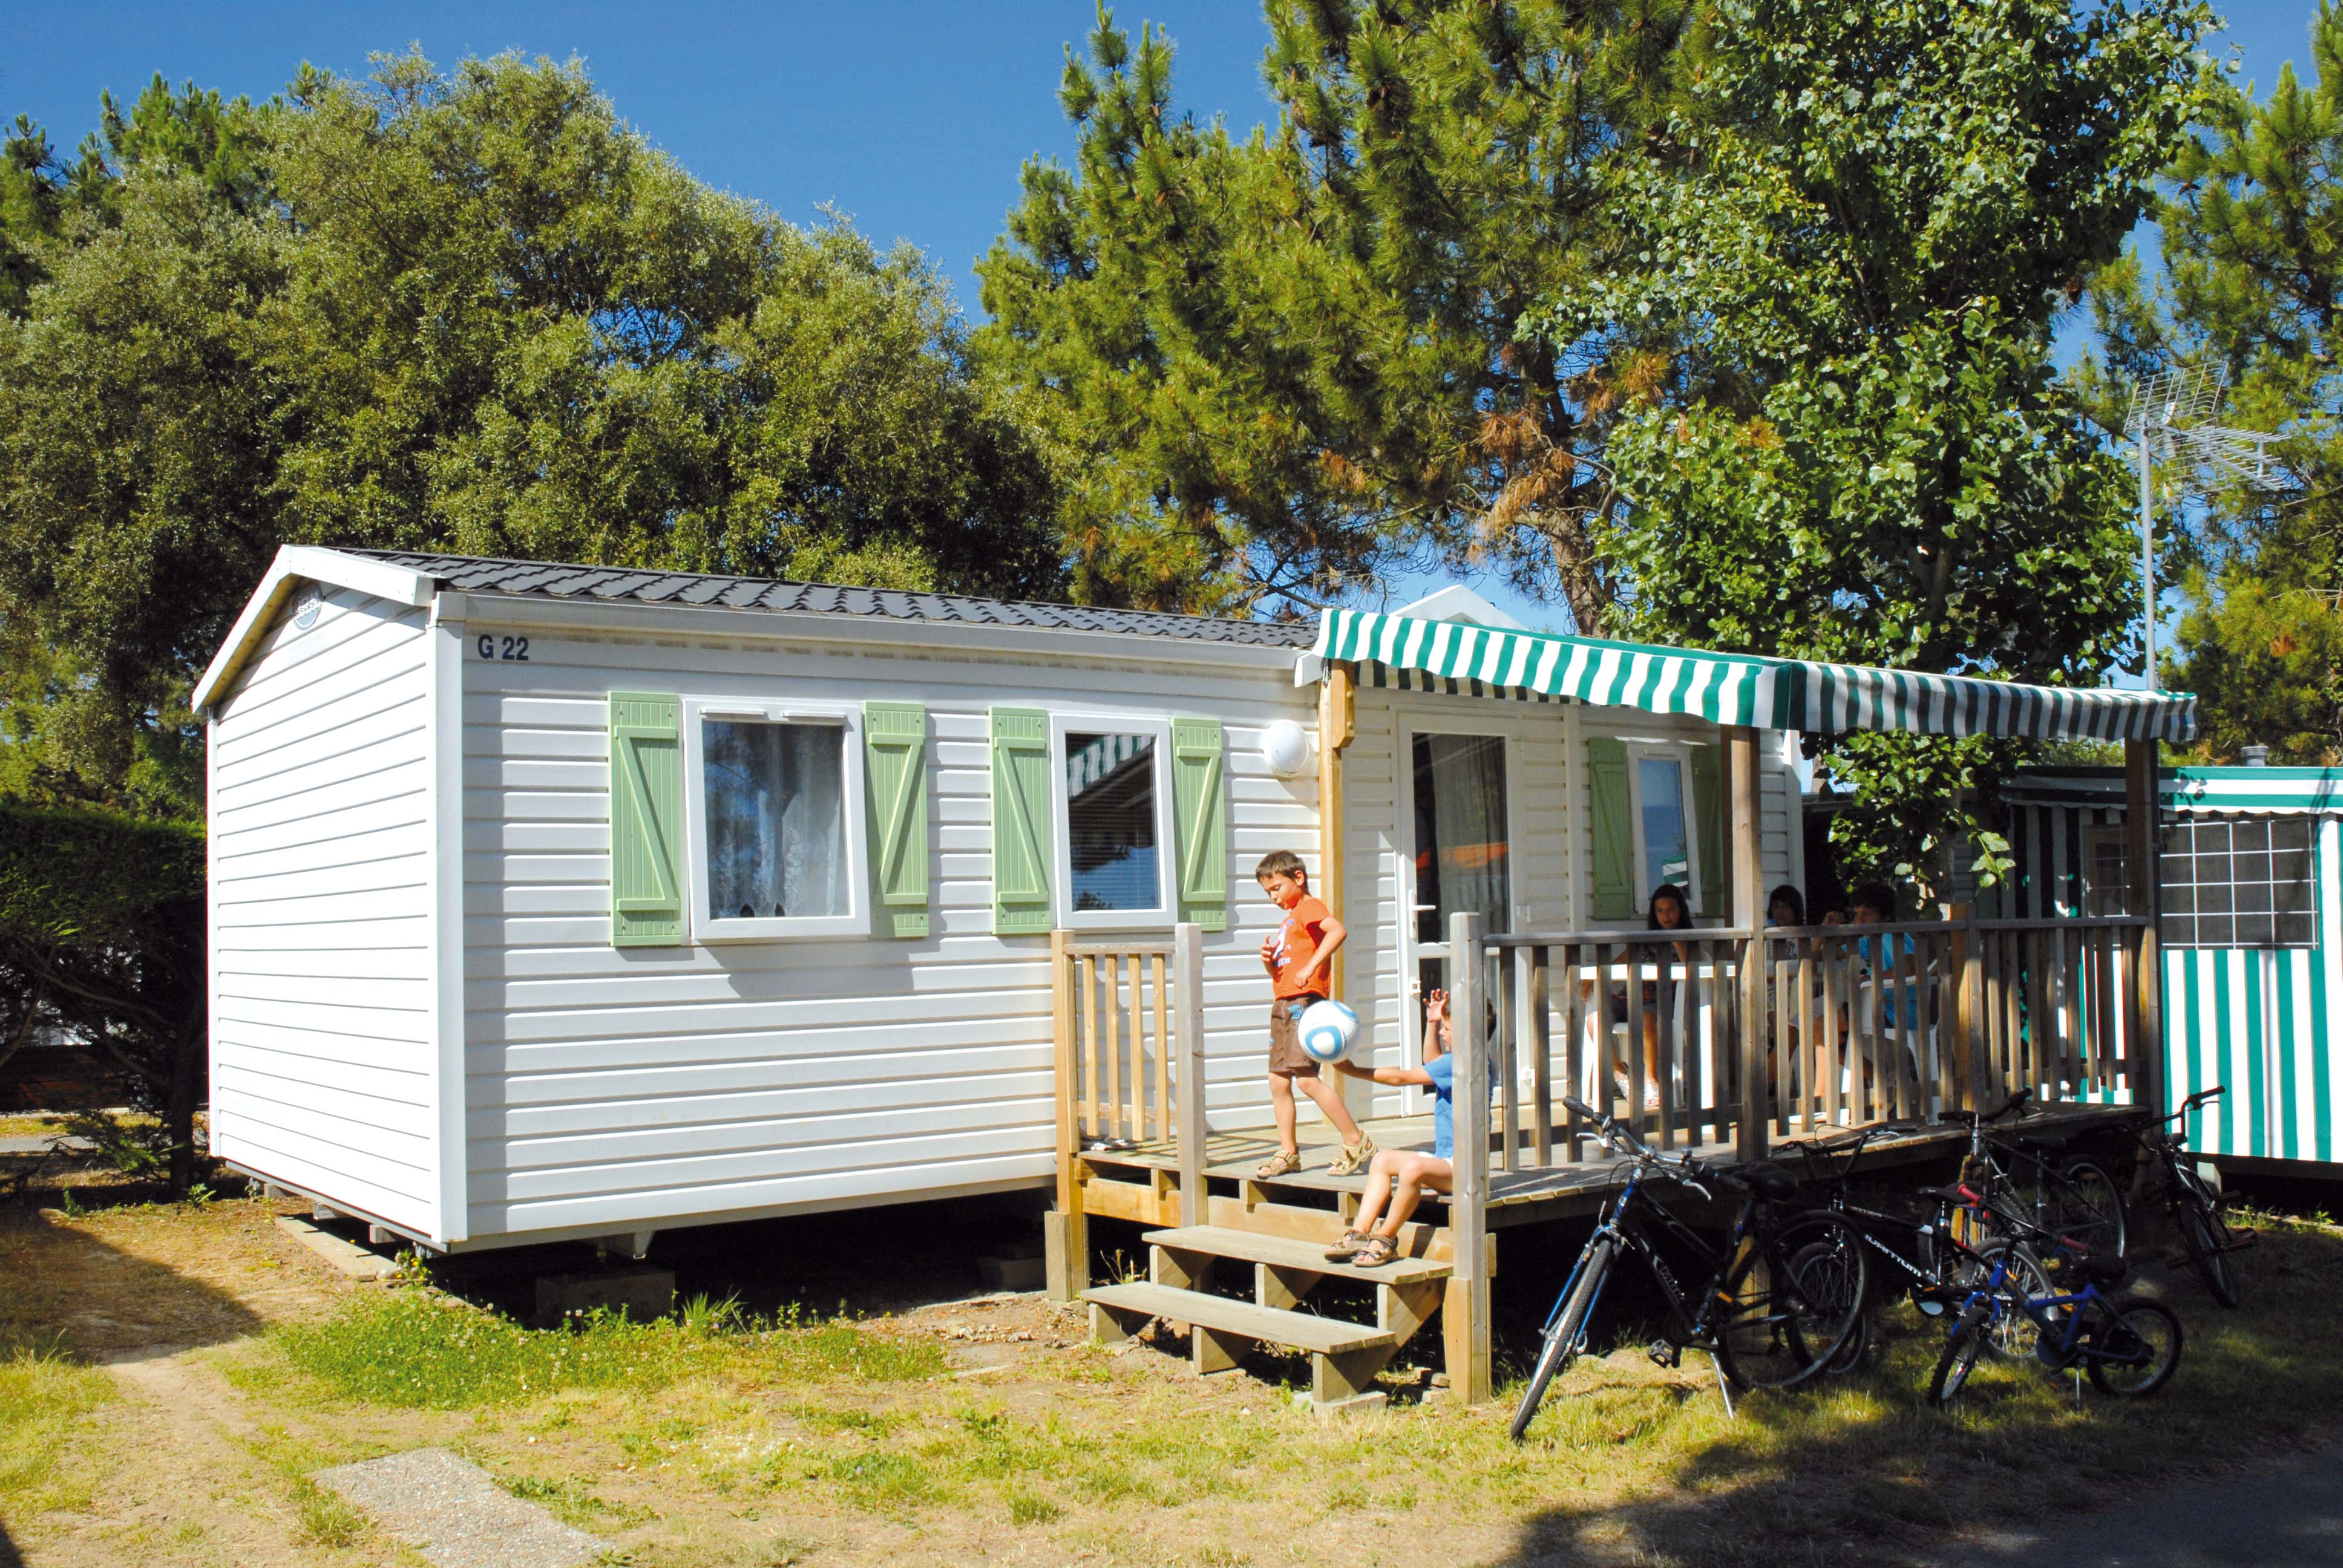 Mobil home loisir 3 chambres 8 personnes 30m camping riez la vie 4 toiles saint - Camping mobil home 4 chambres ...